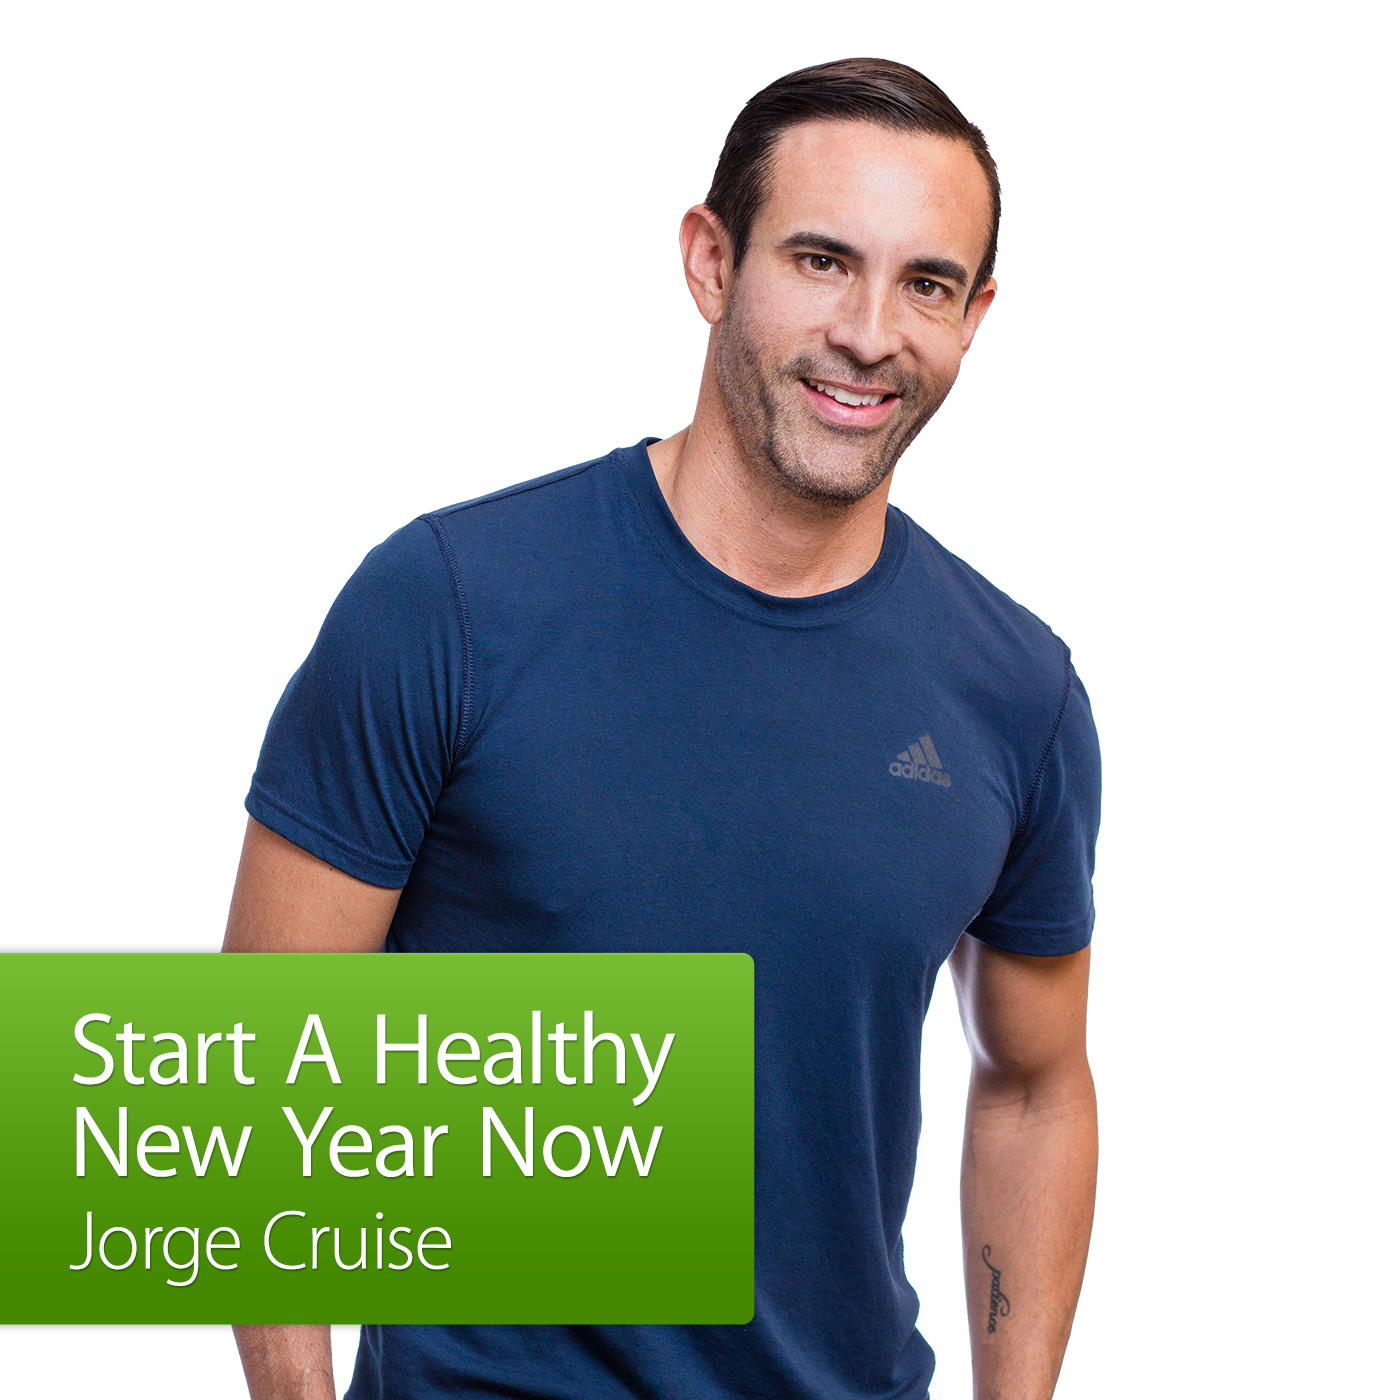 Start A Healthy New Year Now with Jorge Cruise